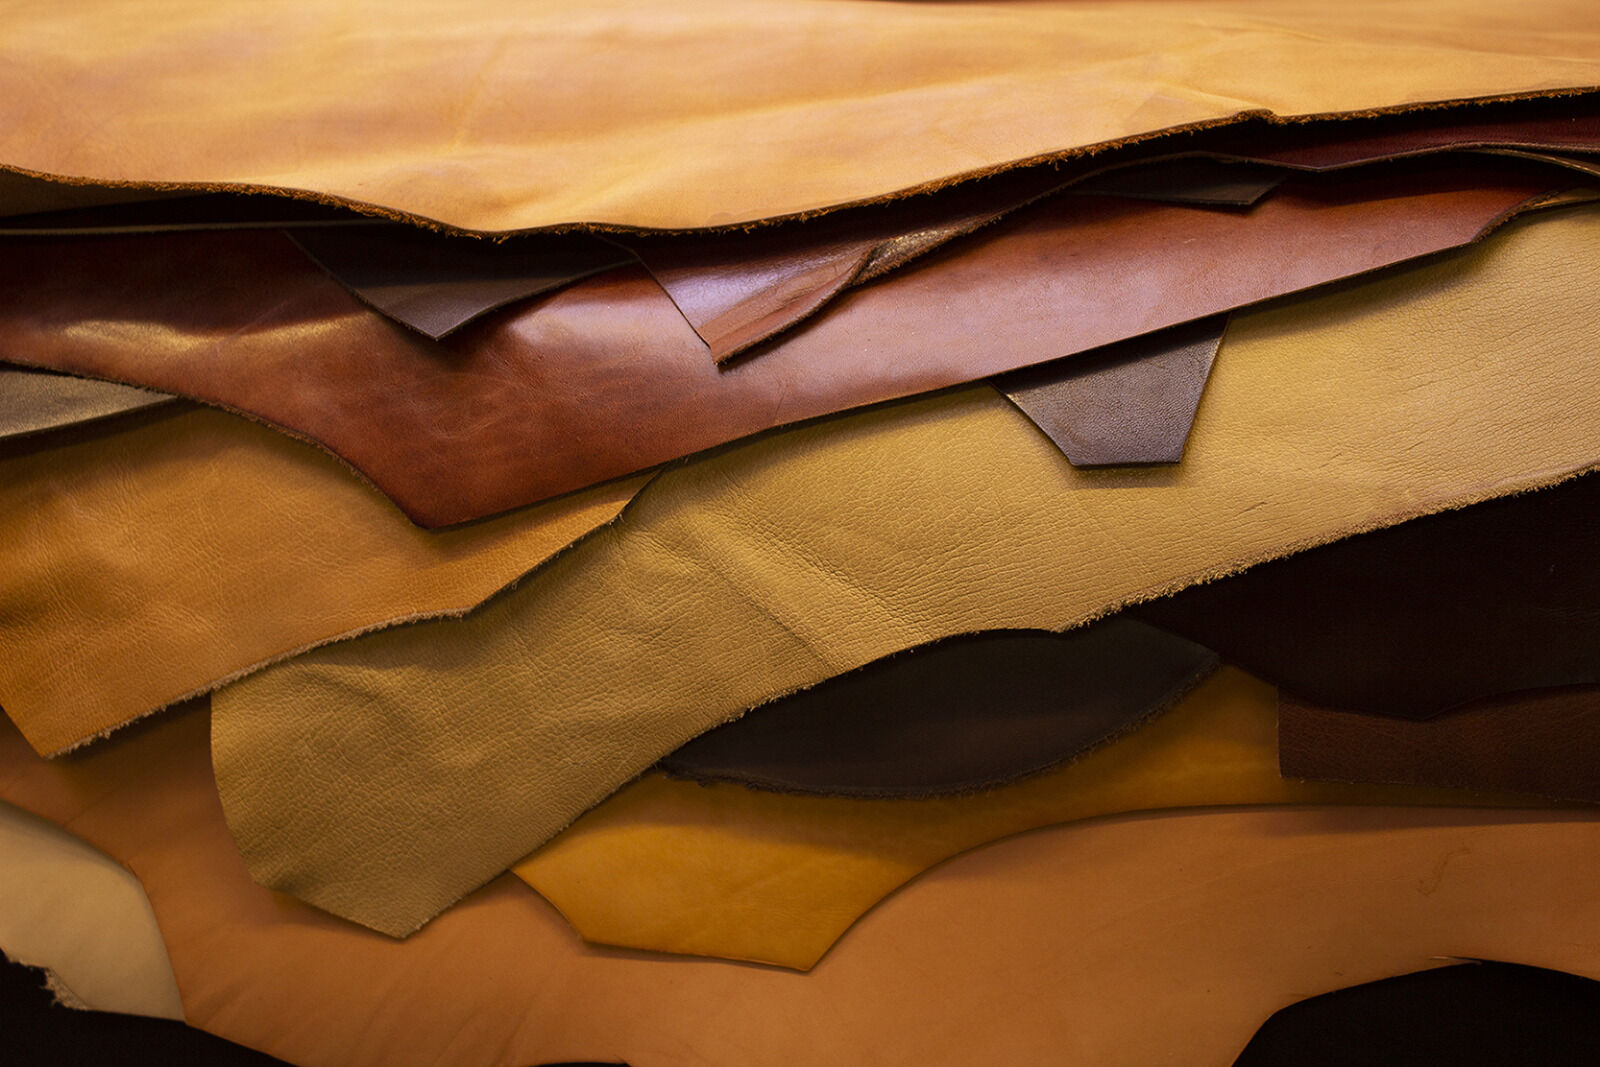 Various leather skins